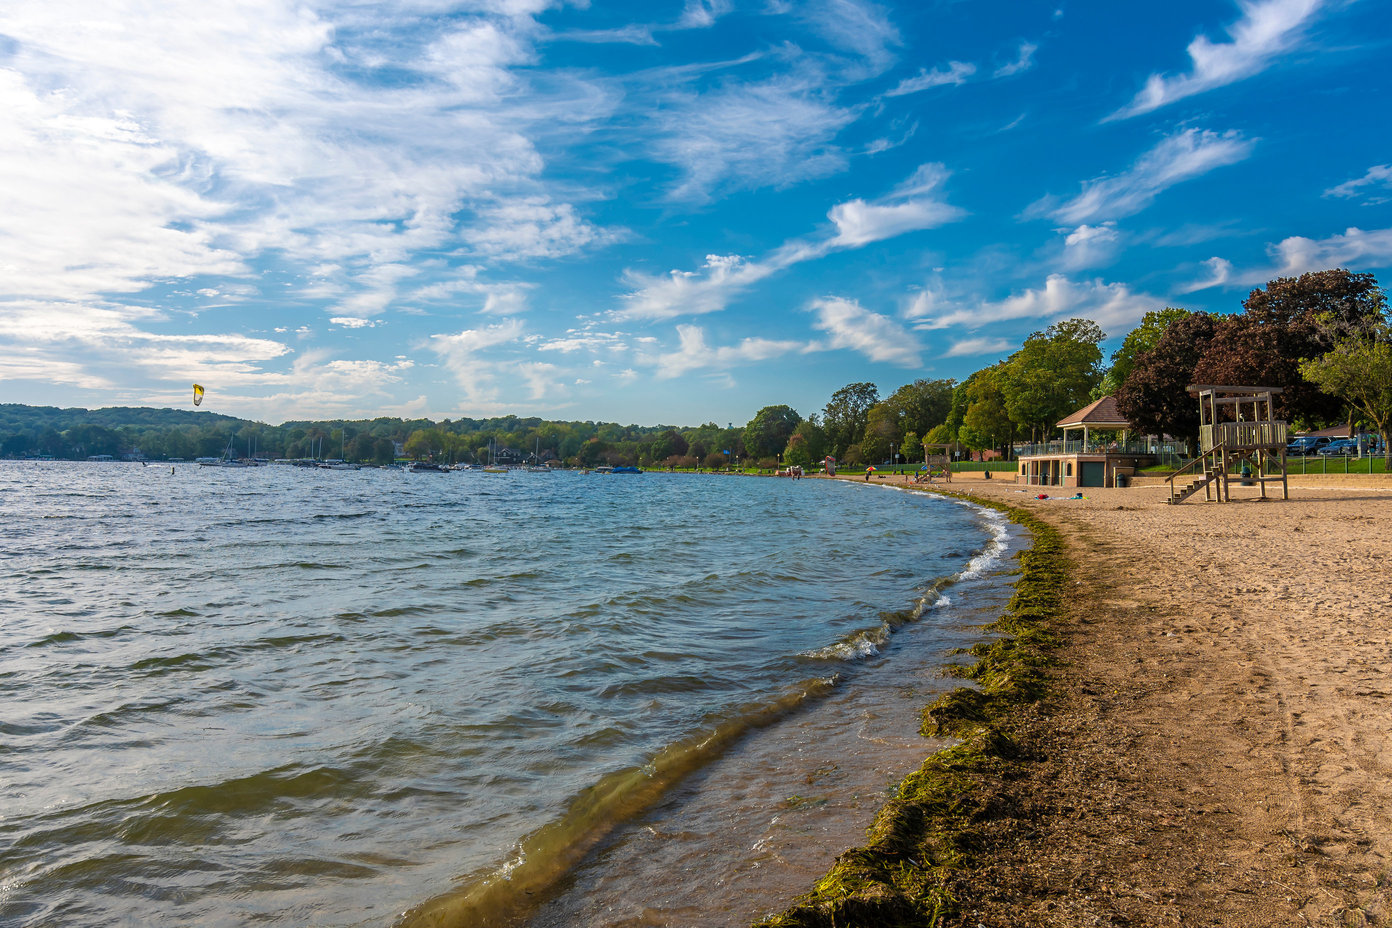 A view of a beach on Lake Geneva in Wisconsin, one of the great fishing spots near Chicago